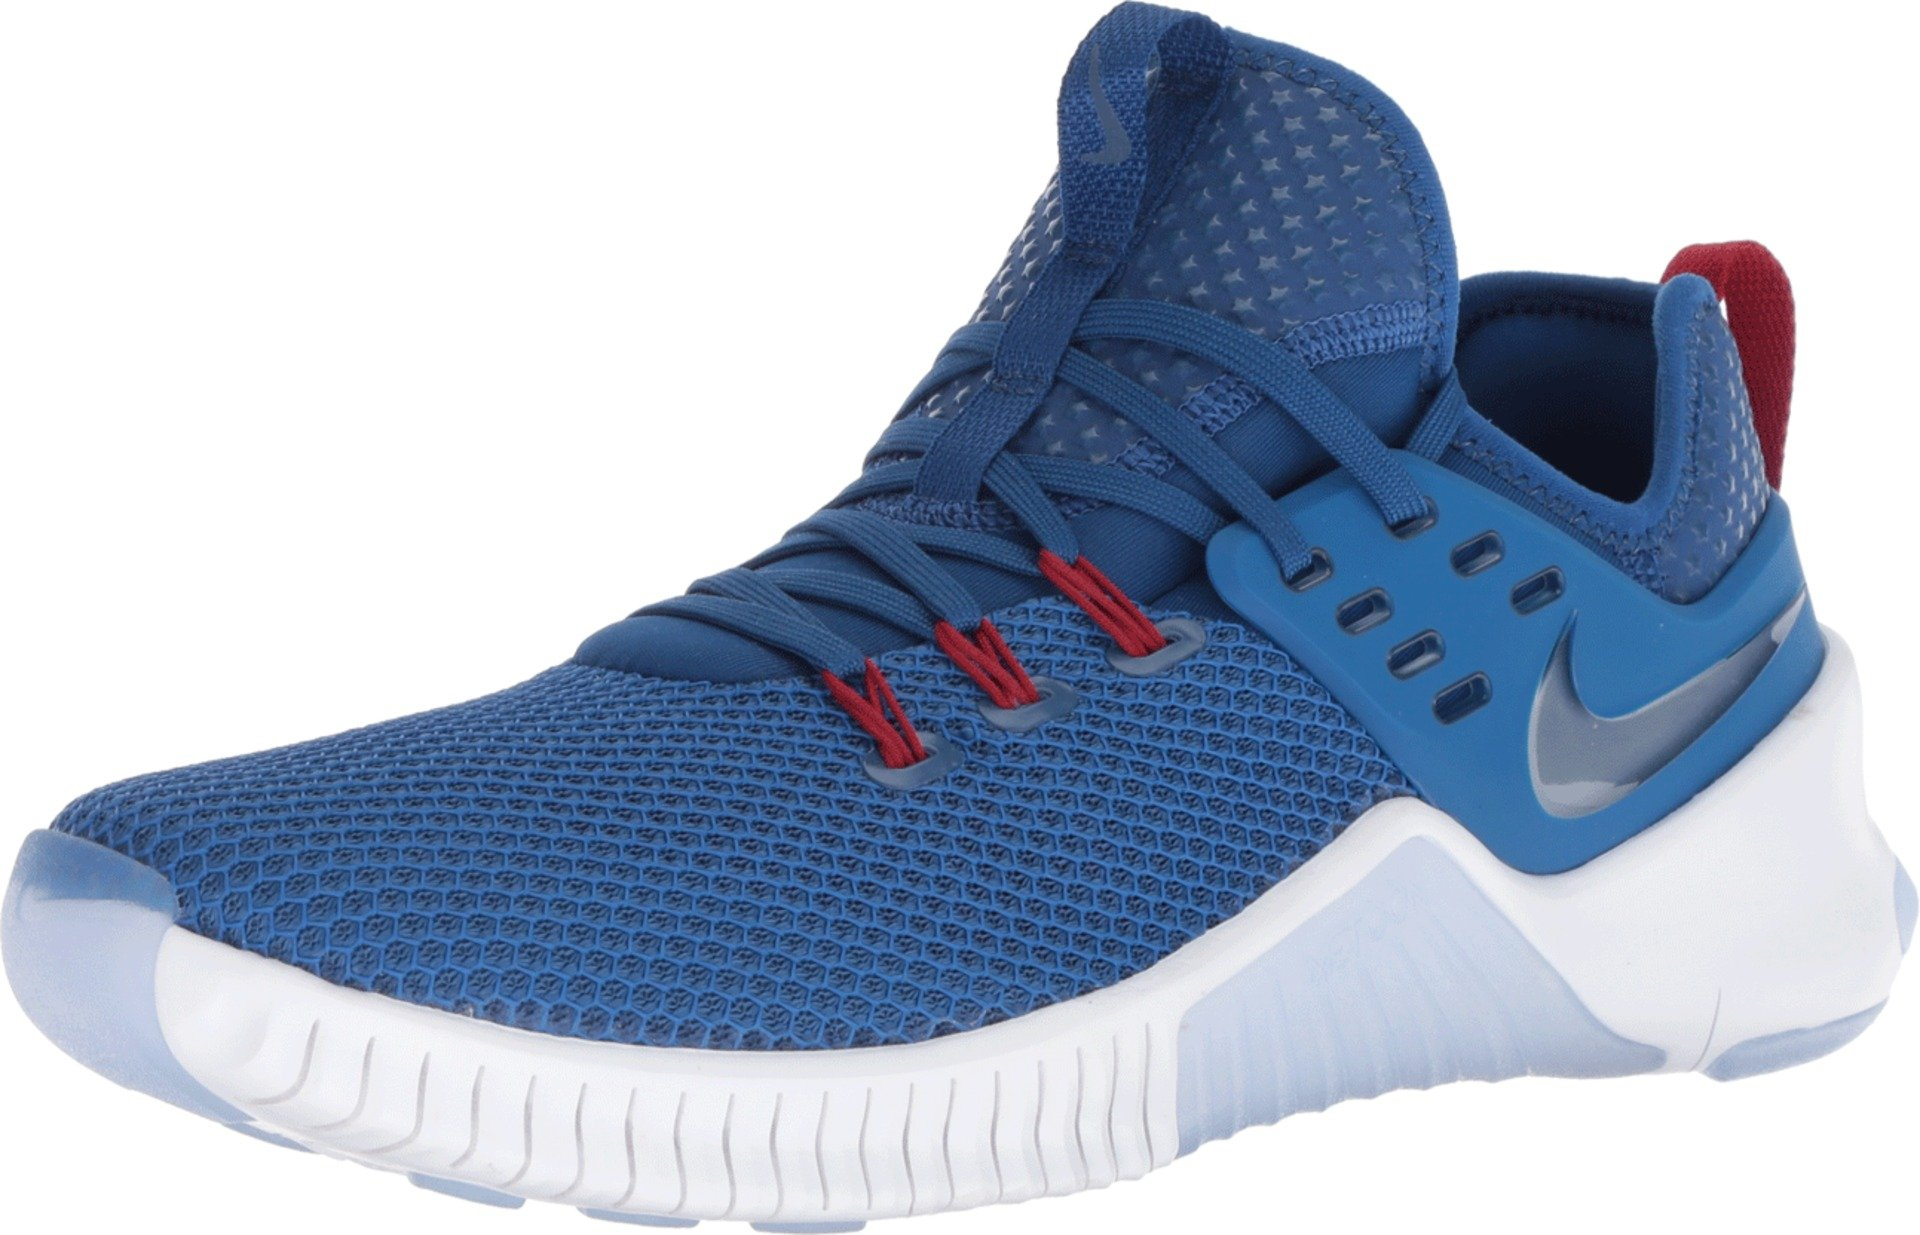 wholesale dealer c35a4 545c8 Galleon - Nike Men s Free X Metcon Americana Training Shoes (12, Blue White  Red)